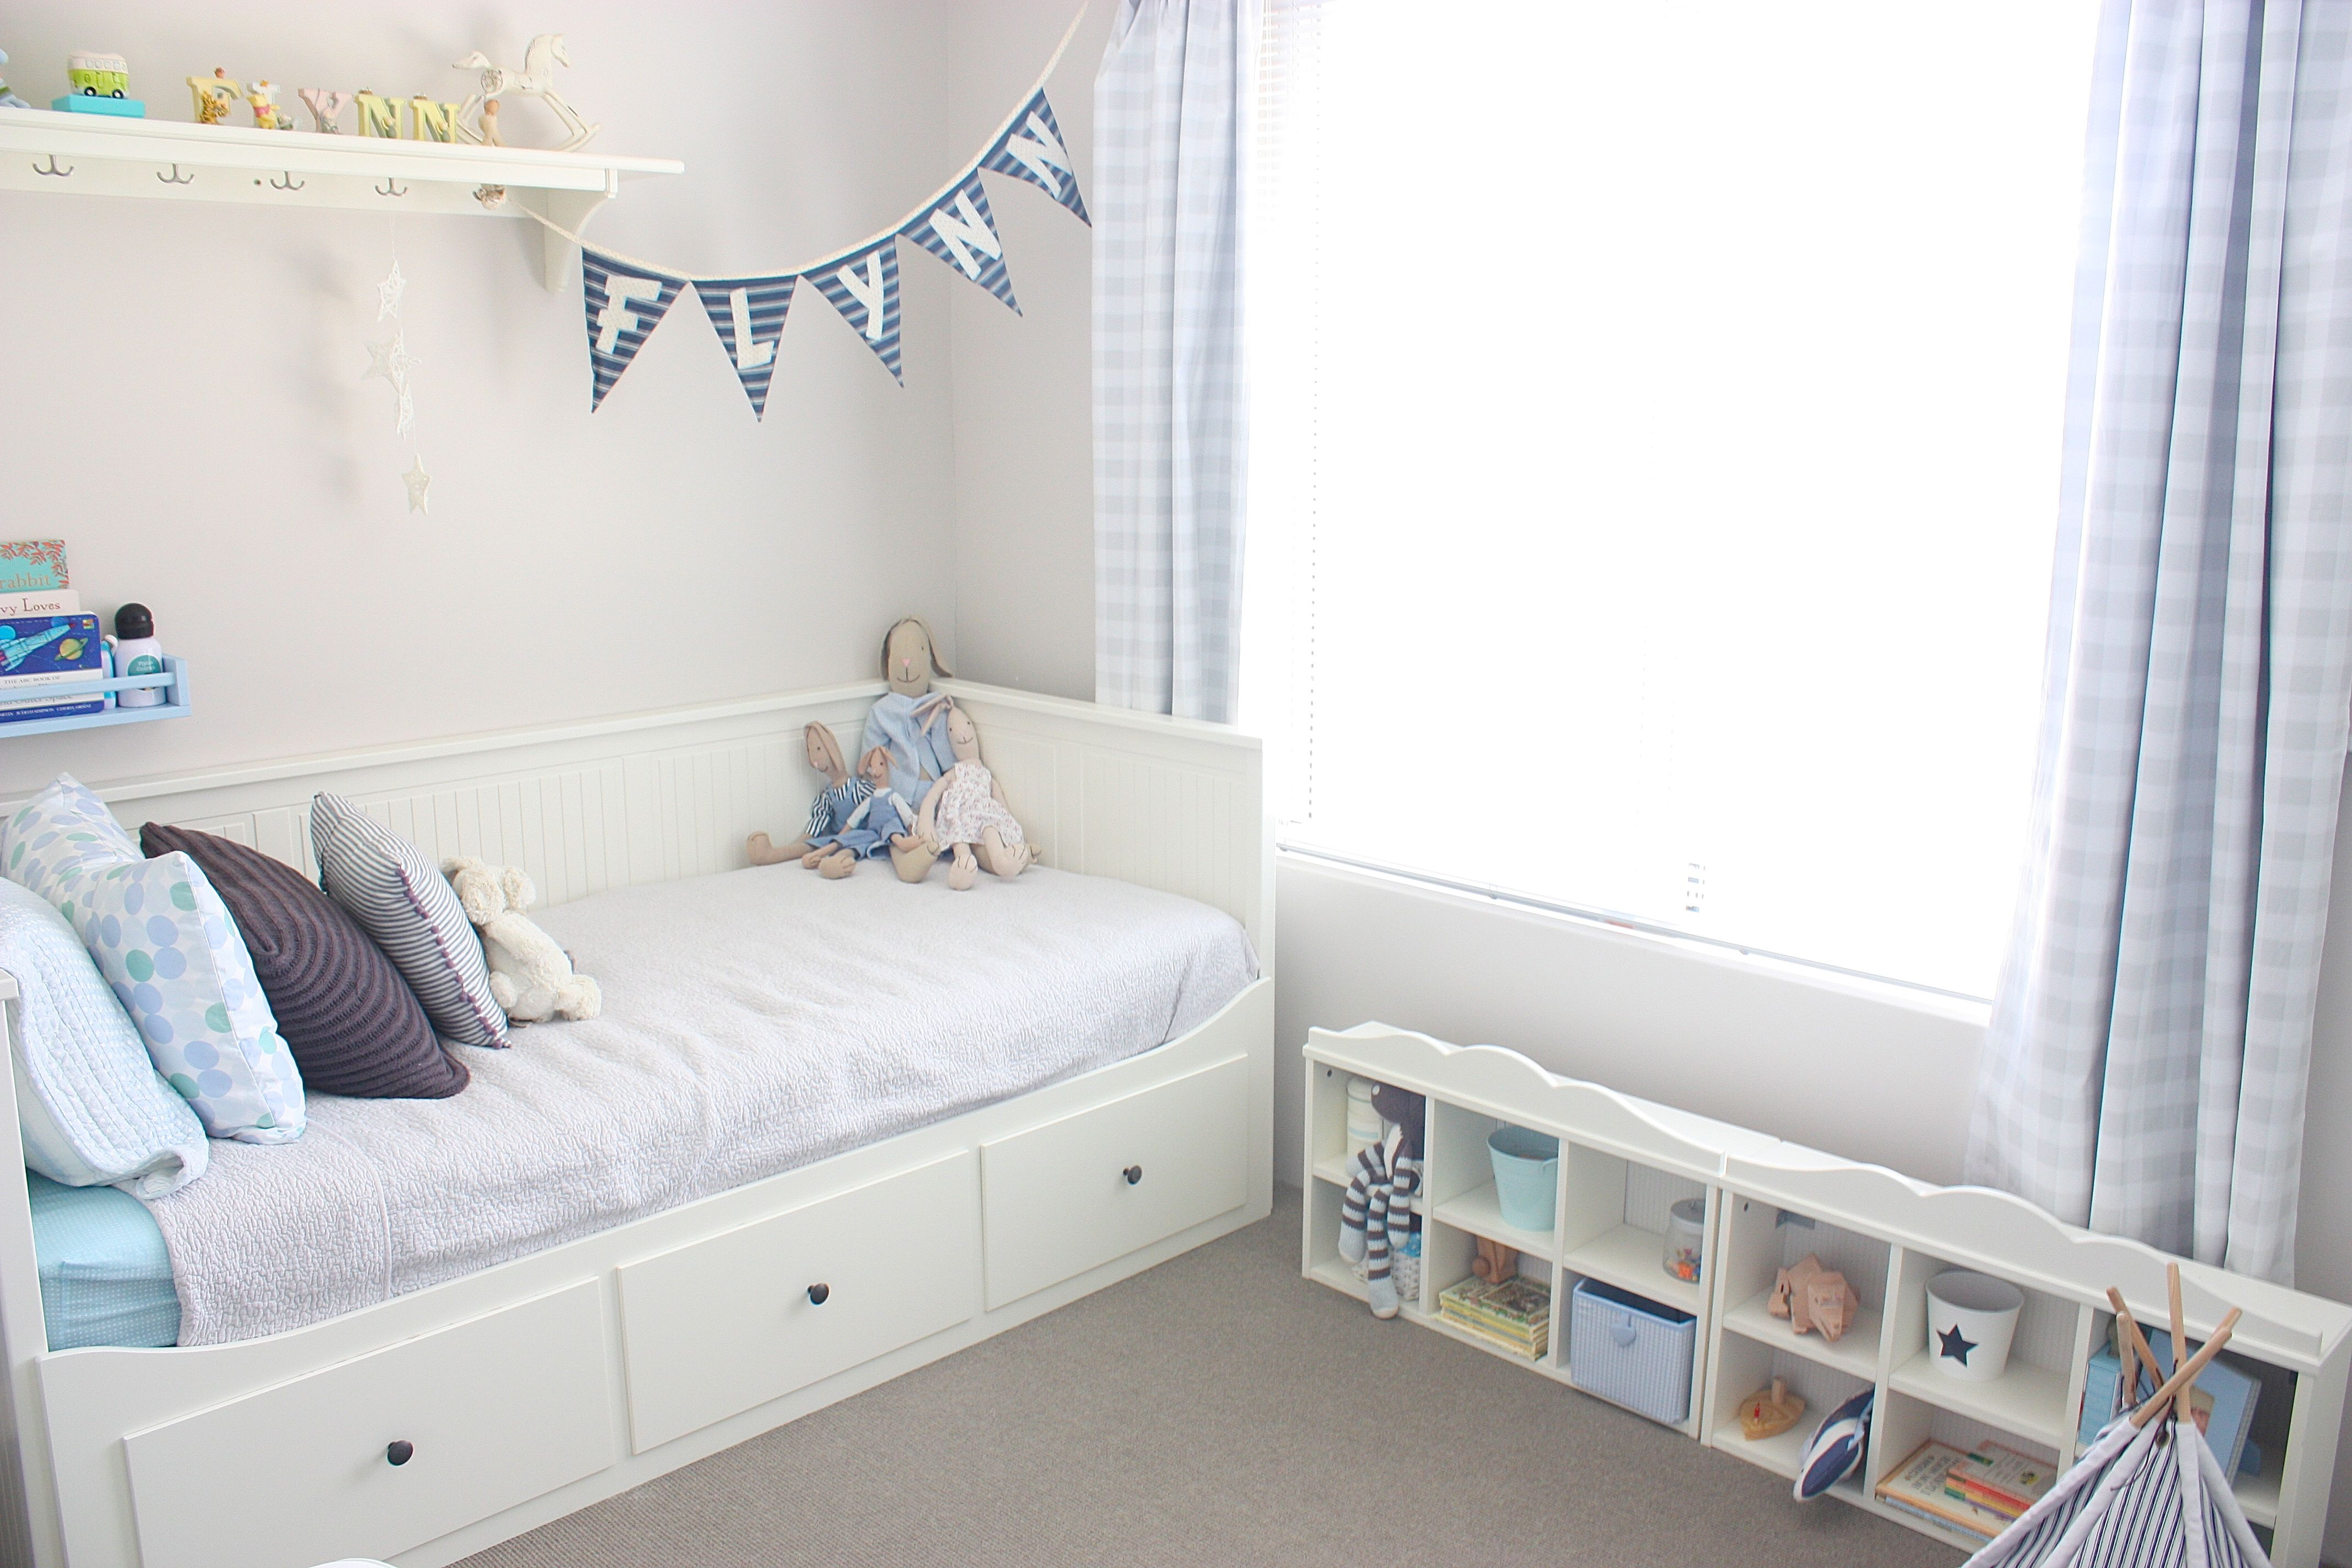 ikea shelves hemnes daybed in a boys bedroom my dream home designs pinterest ikea spice rack. Black Bedroom Furniture Sets. Home Design Ideas